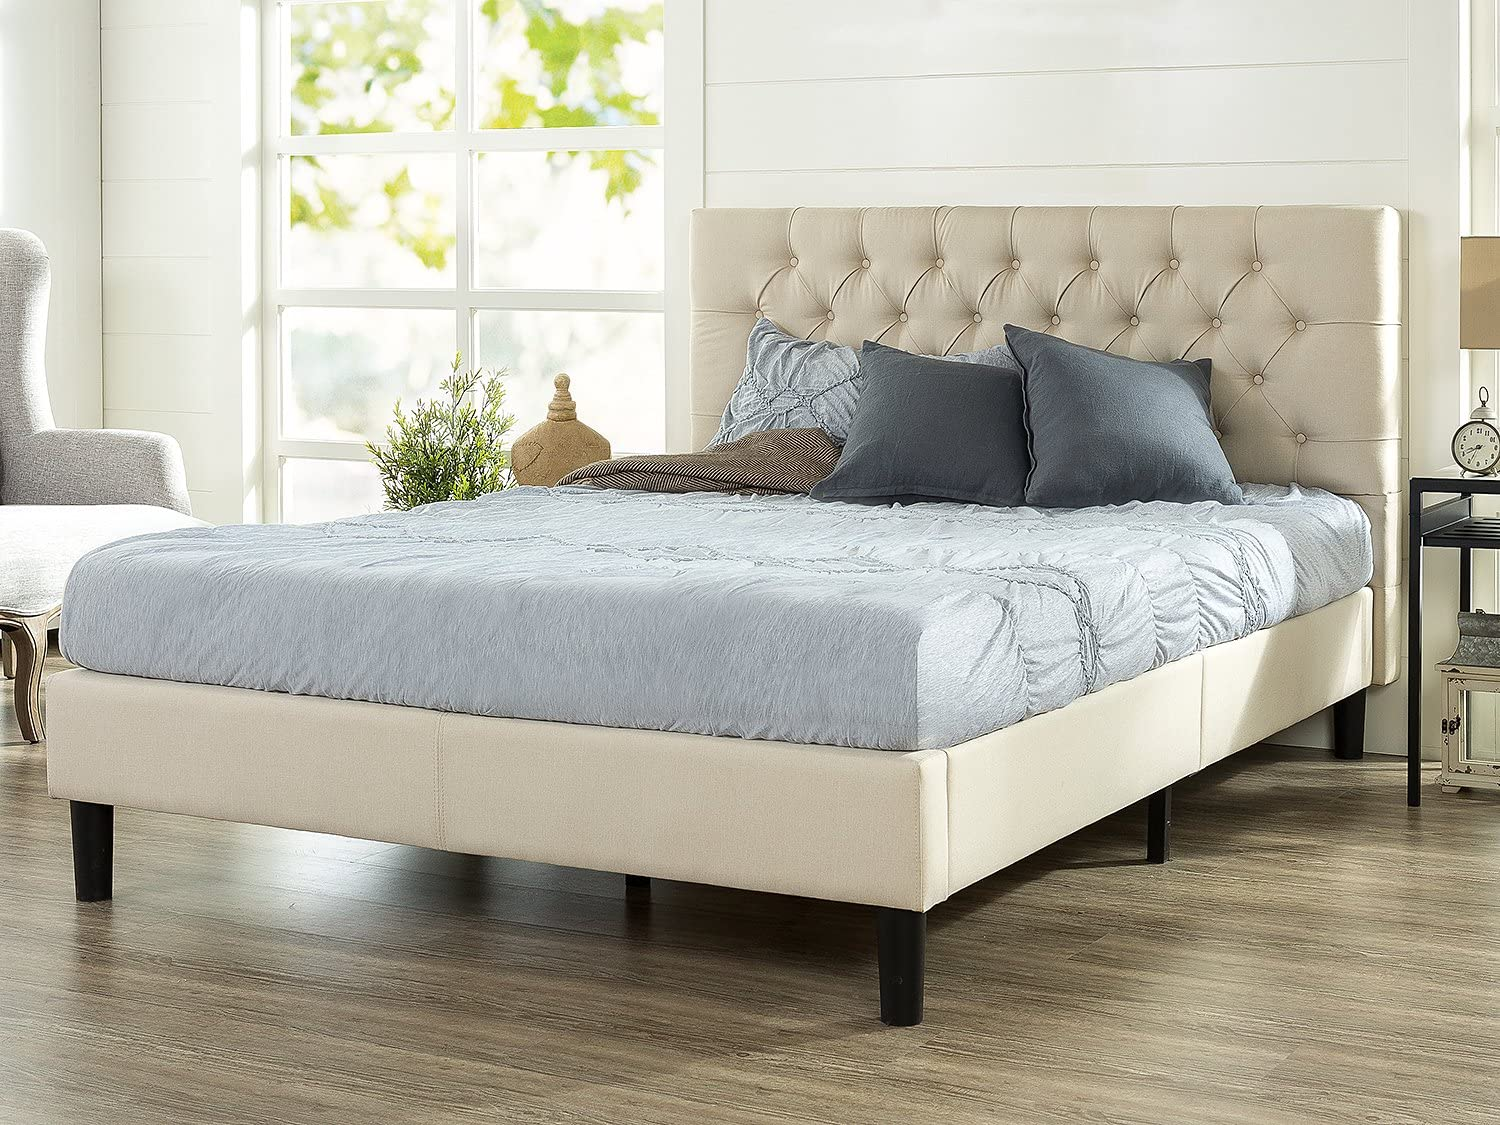 Zinus Misty Upholstered Modern Classic Tufted Platform Bed Easy Assembly Strong Wood Slat Support Full Mattress Foundation